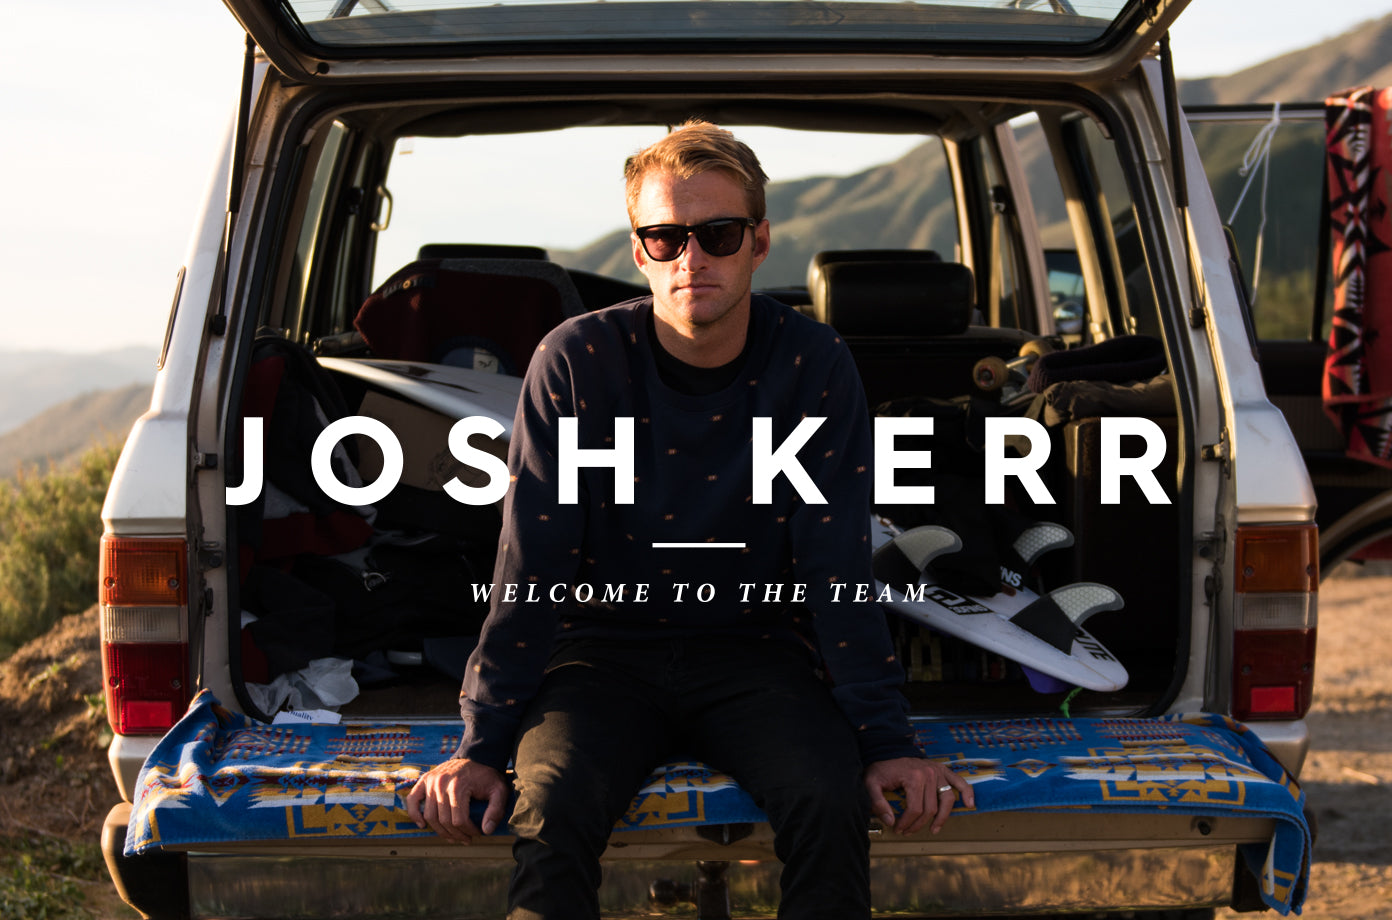 RAEN WELCOMES JOSH KERR